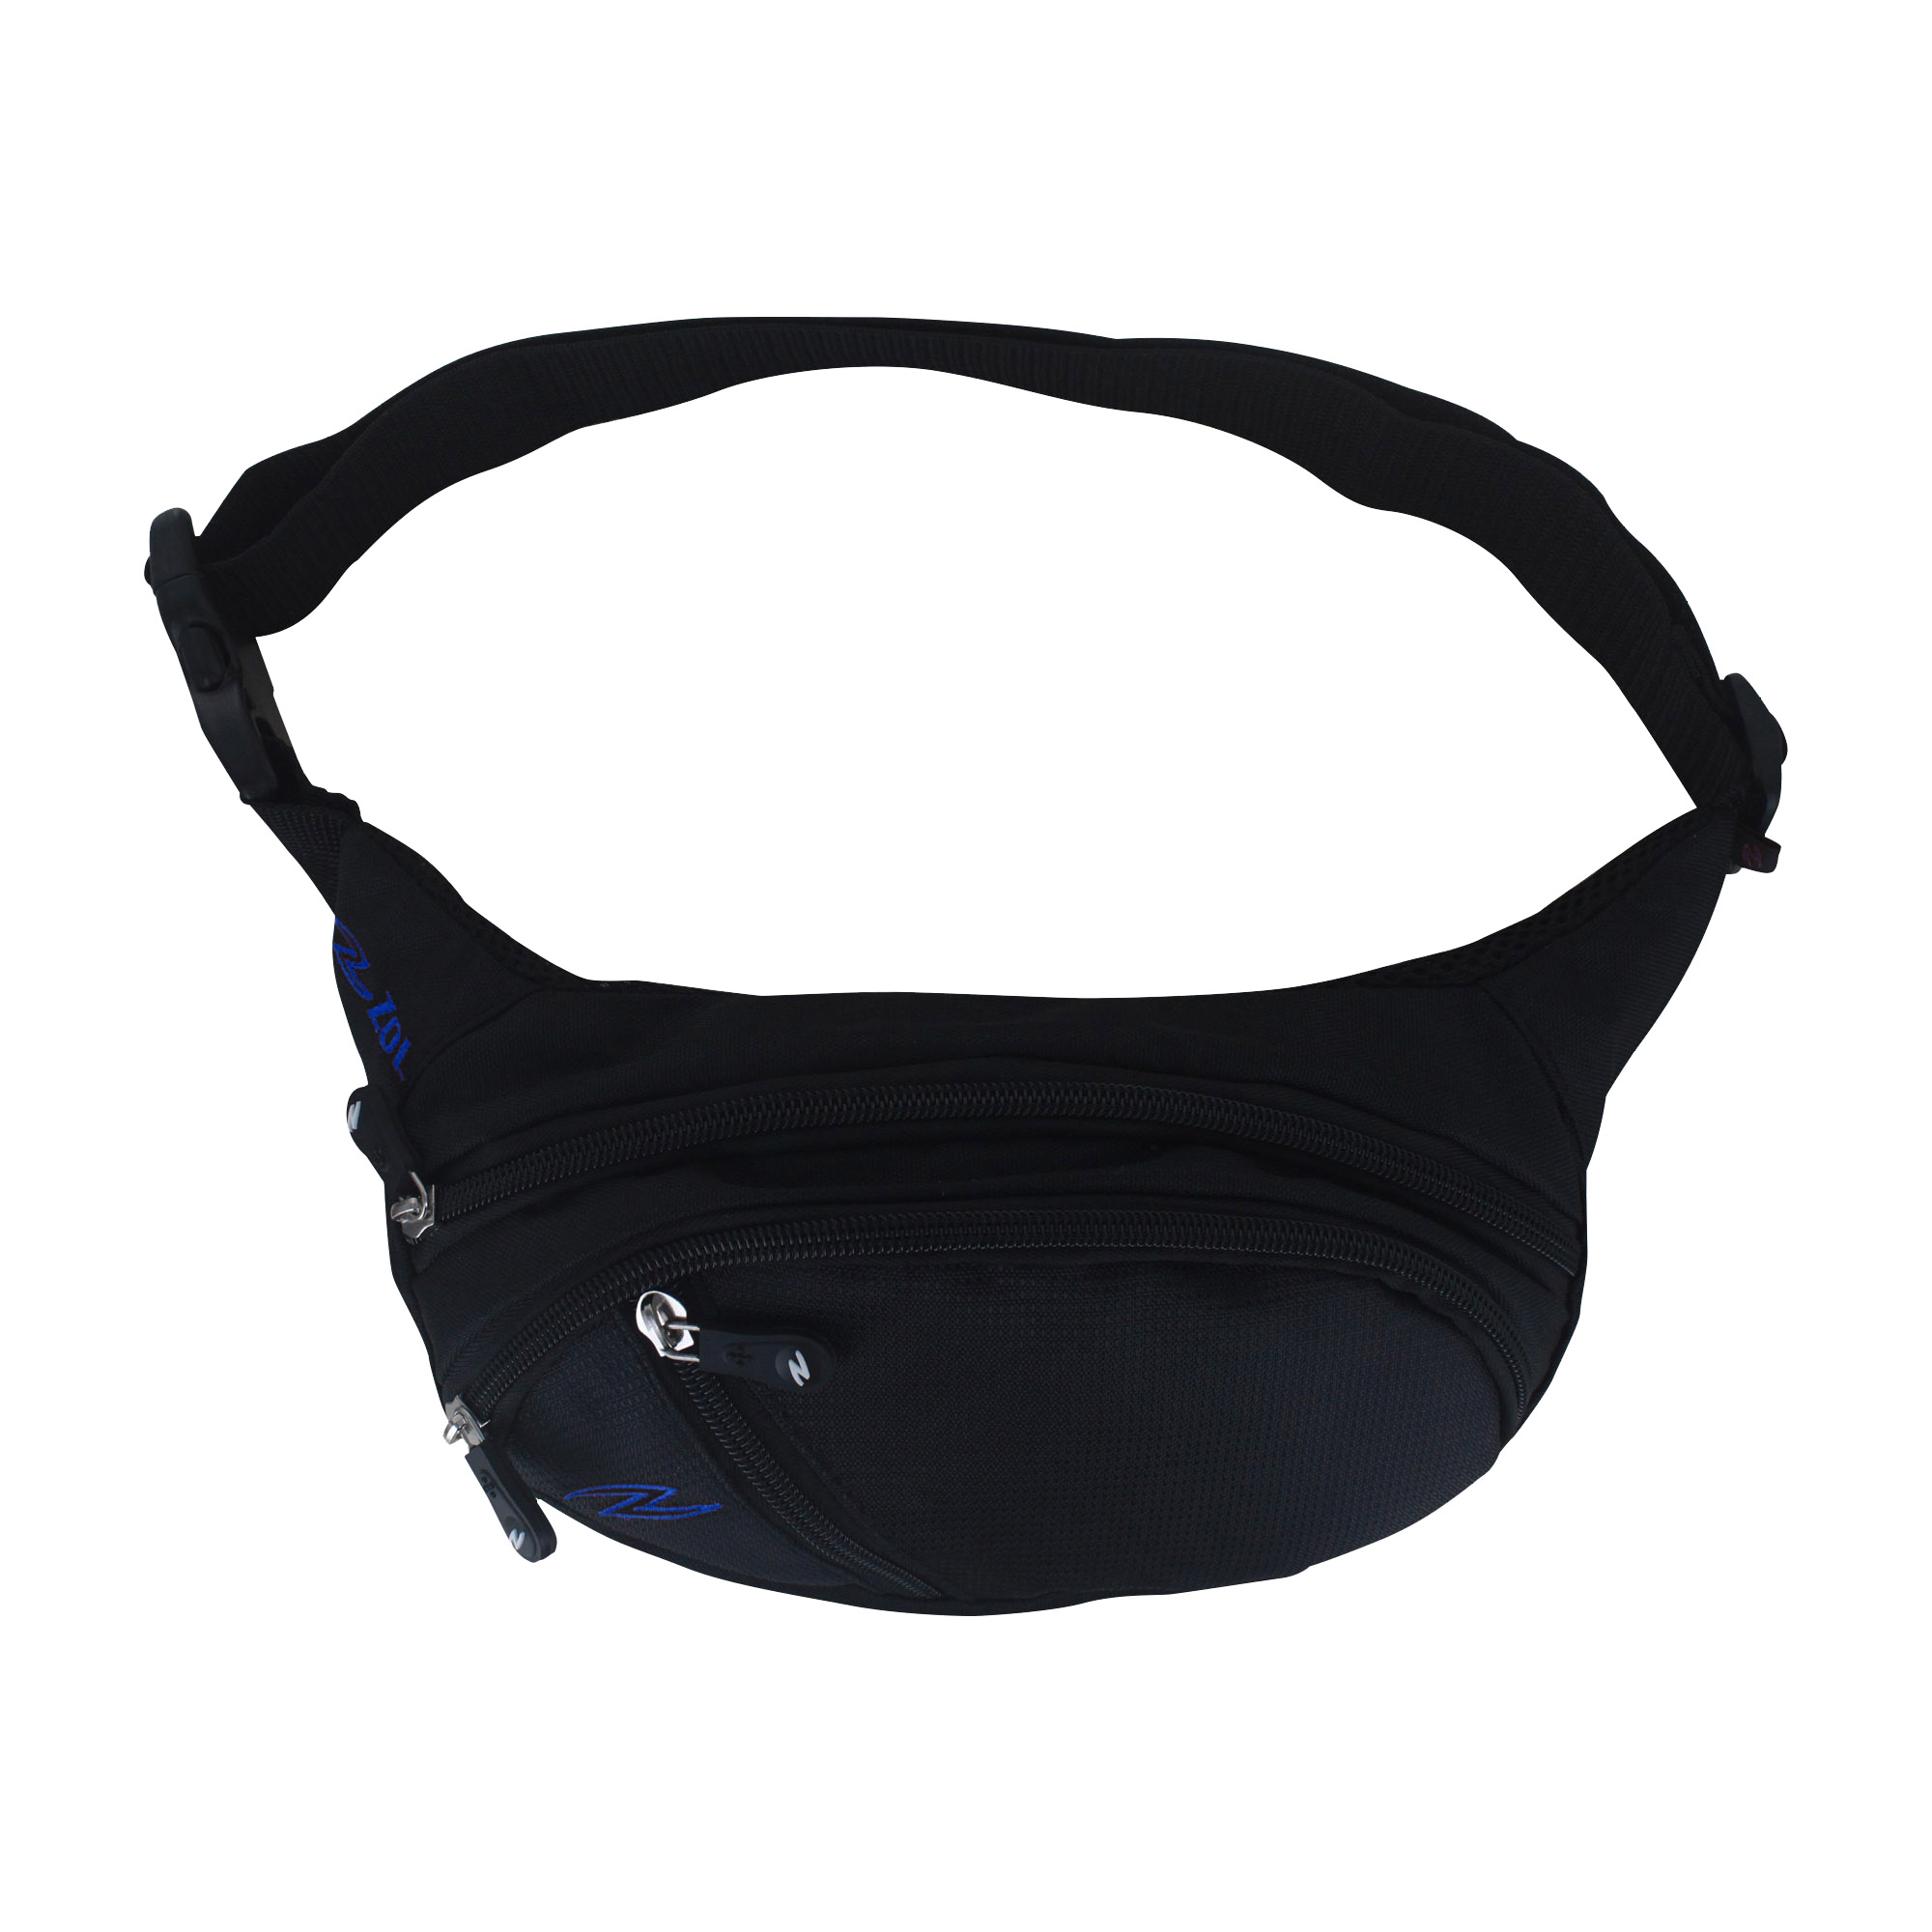 ZOL-XS-Sport-and-Travel-Fashion-Fanny-Pack-Men-Women-Waist-Bag-3-Pockets